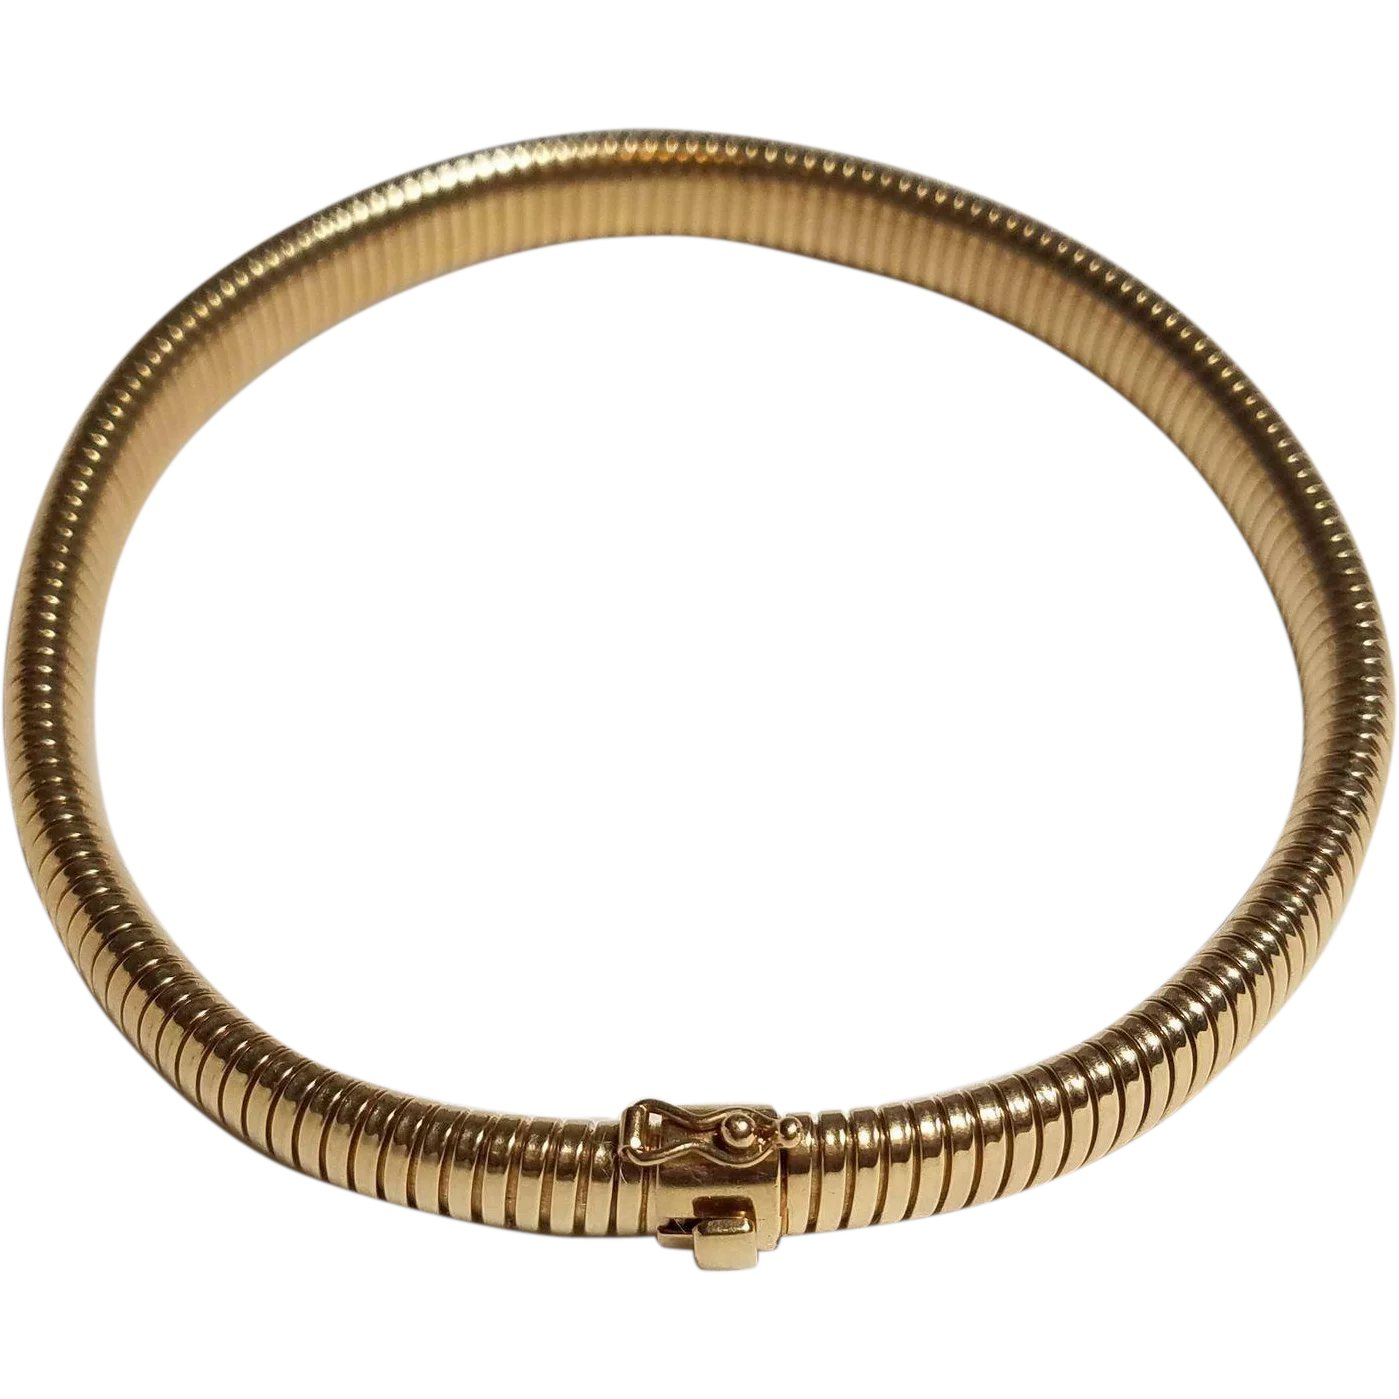 14k gold choker necklace tubogas collier de chien or dog for Best place to sell gold jewelry in chicago